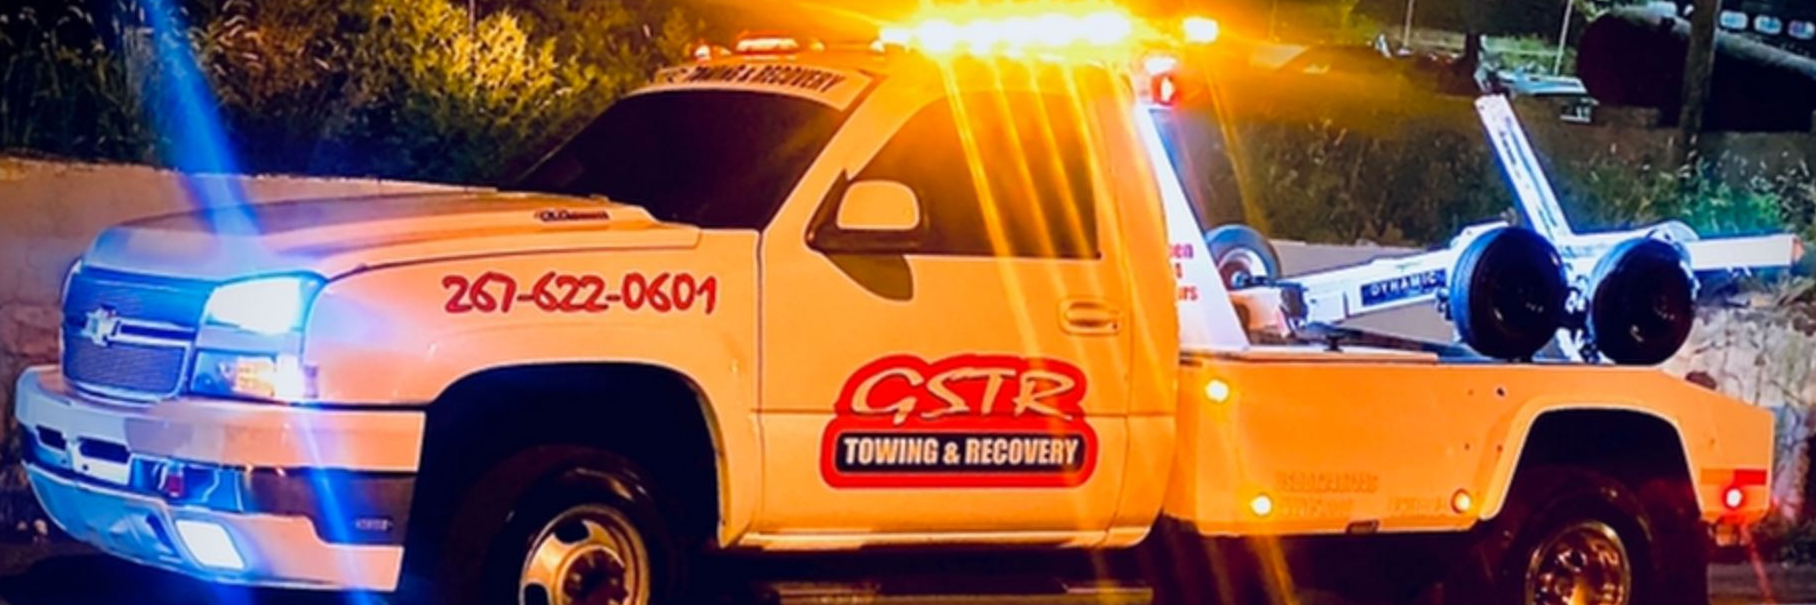 GSTR Towing & Recovery  Towing.com Profile Banner